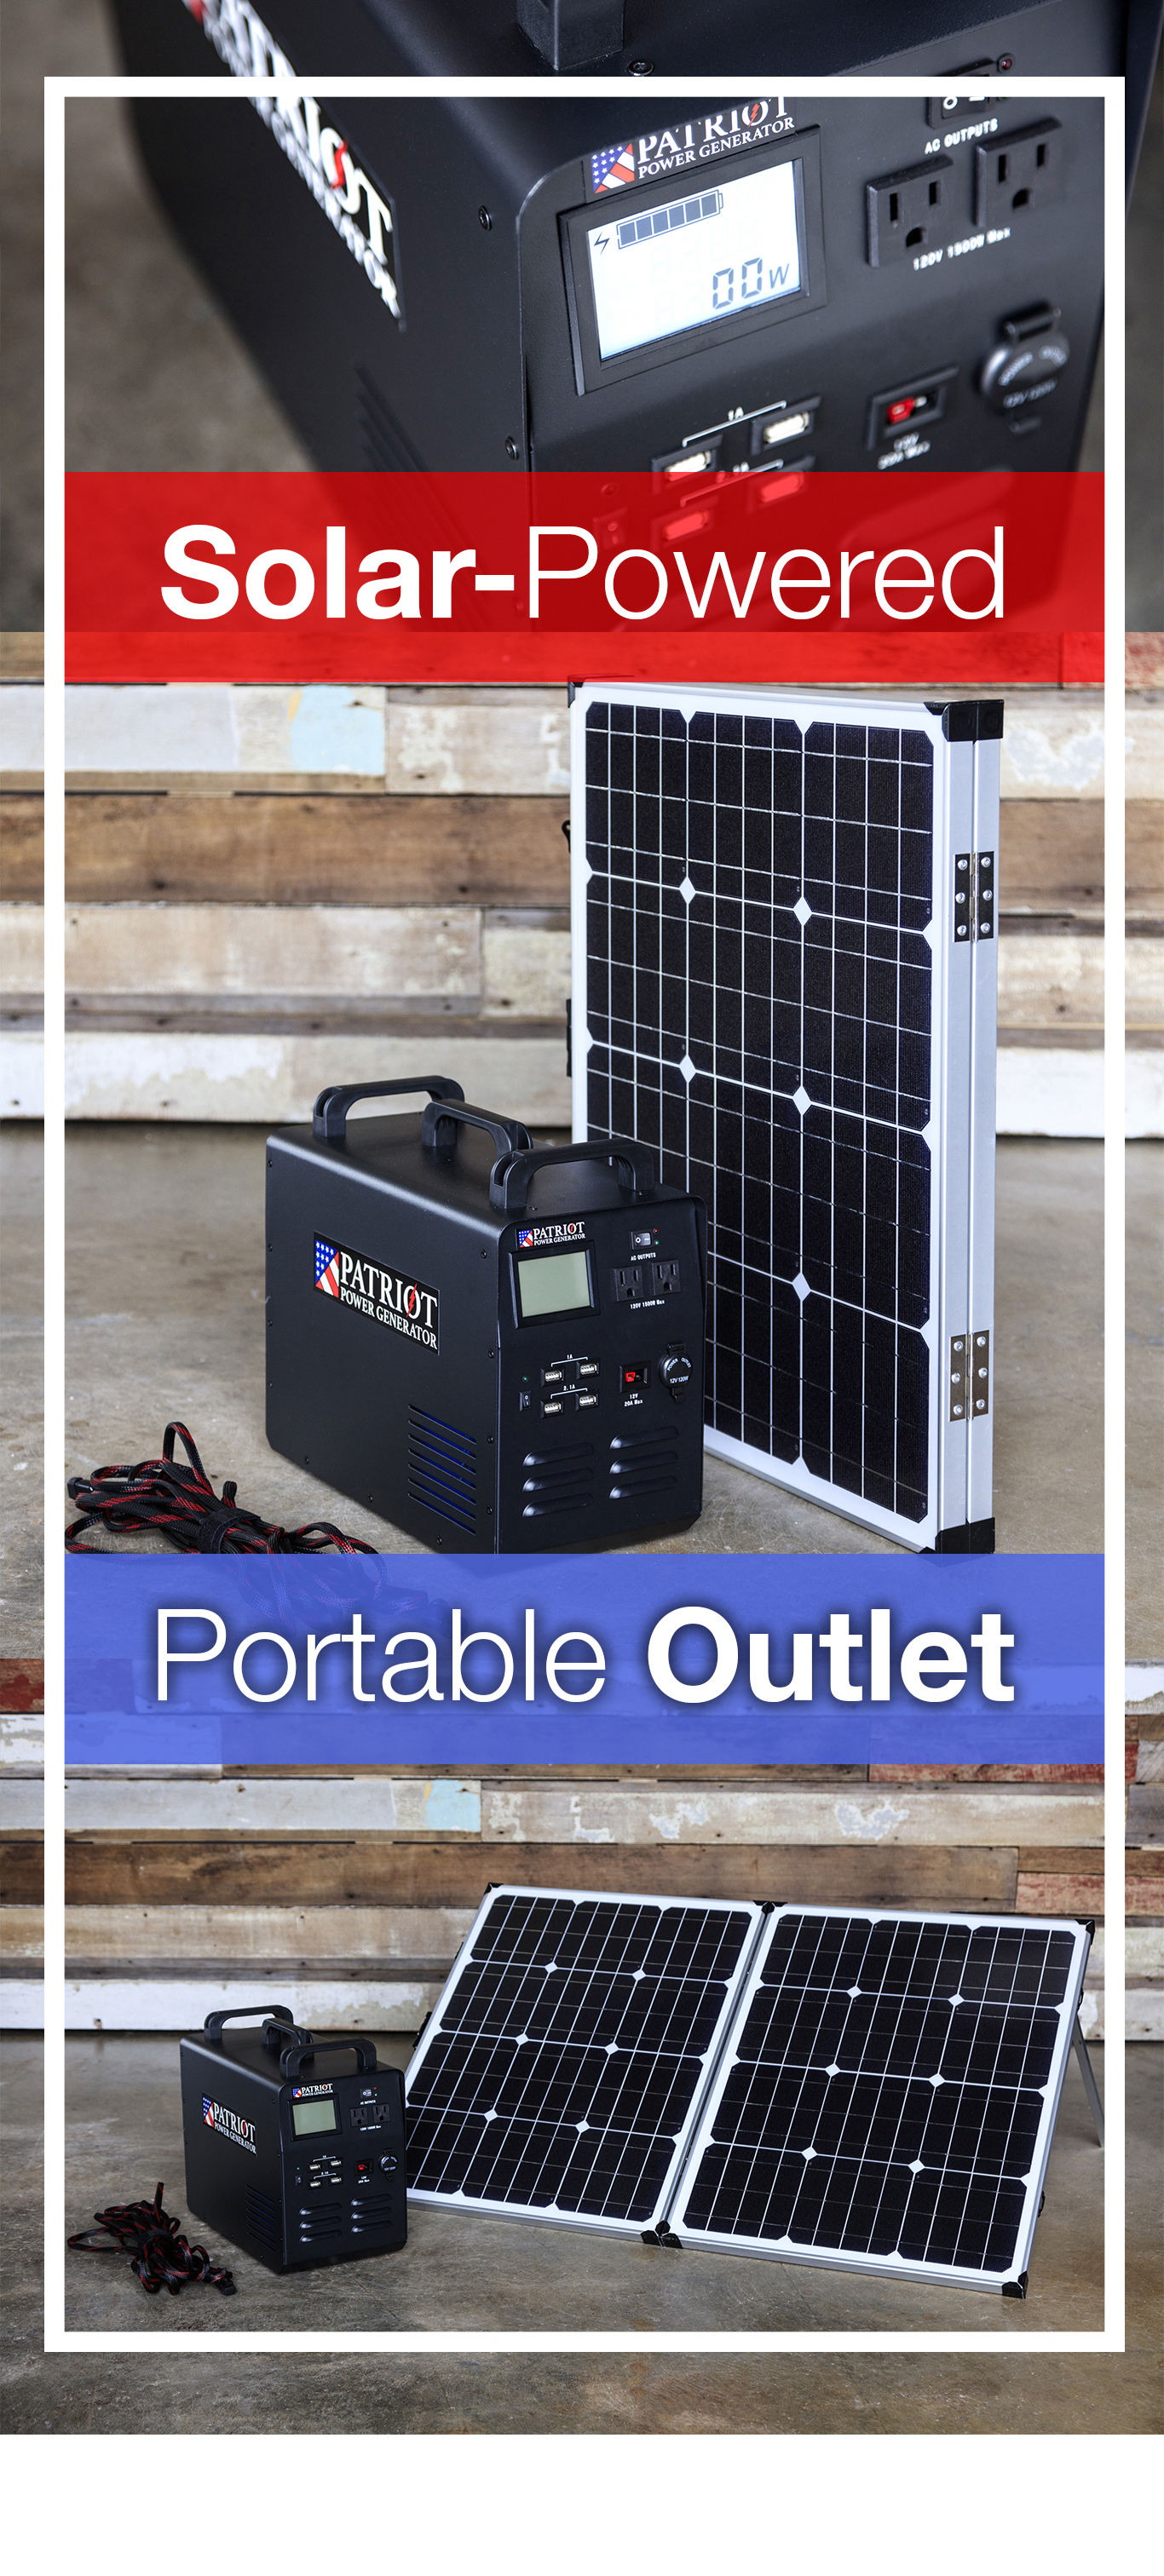 This Thing Can Power Just About Any Device You Can Plug Into A Standard Wall Outlet Including A Fridge It Even Comes With A Foldable S Solar Generator Solar Best Solar